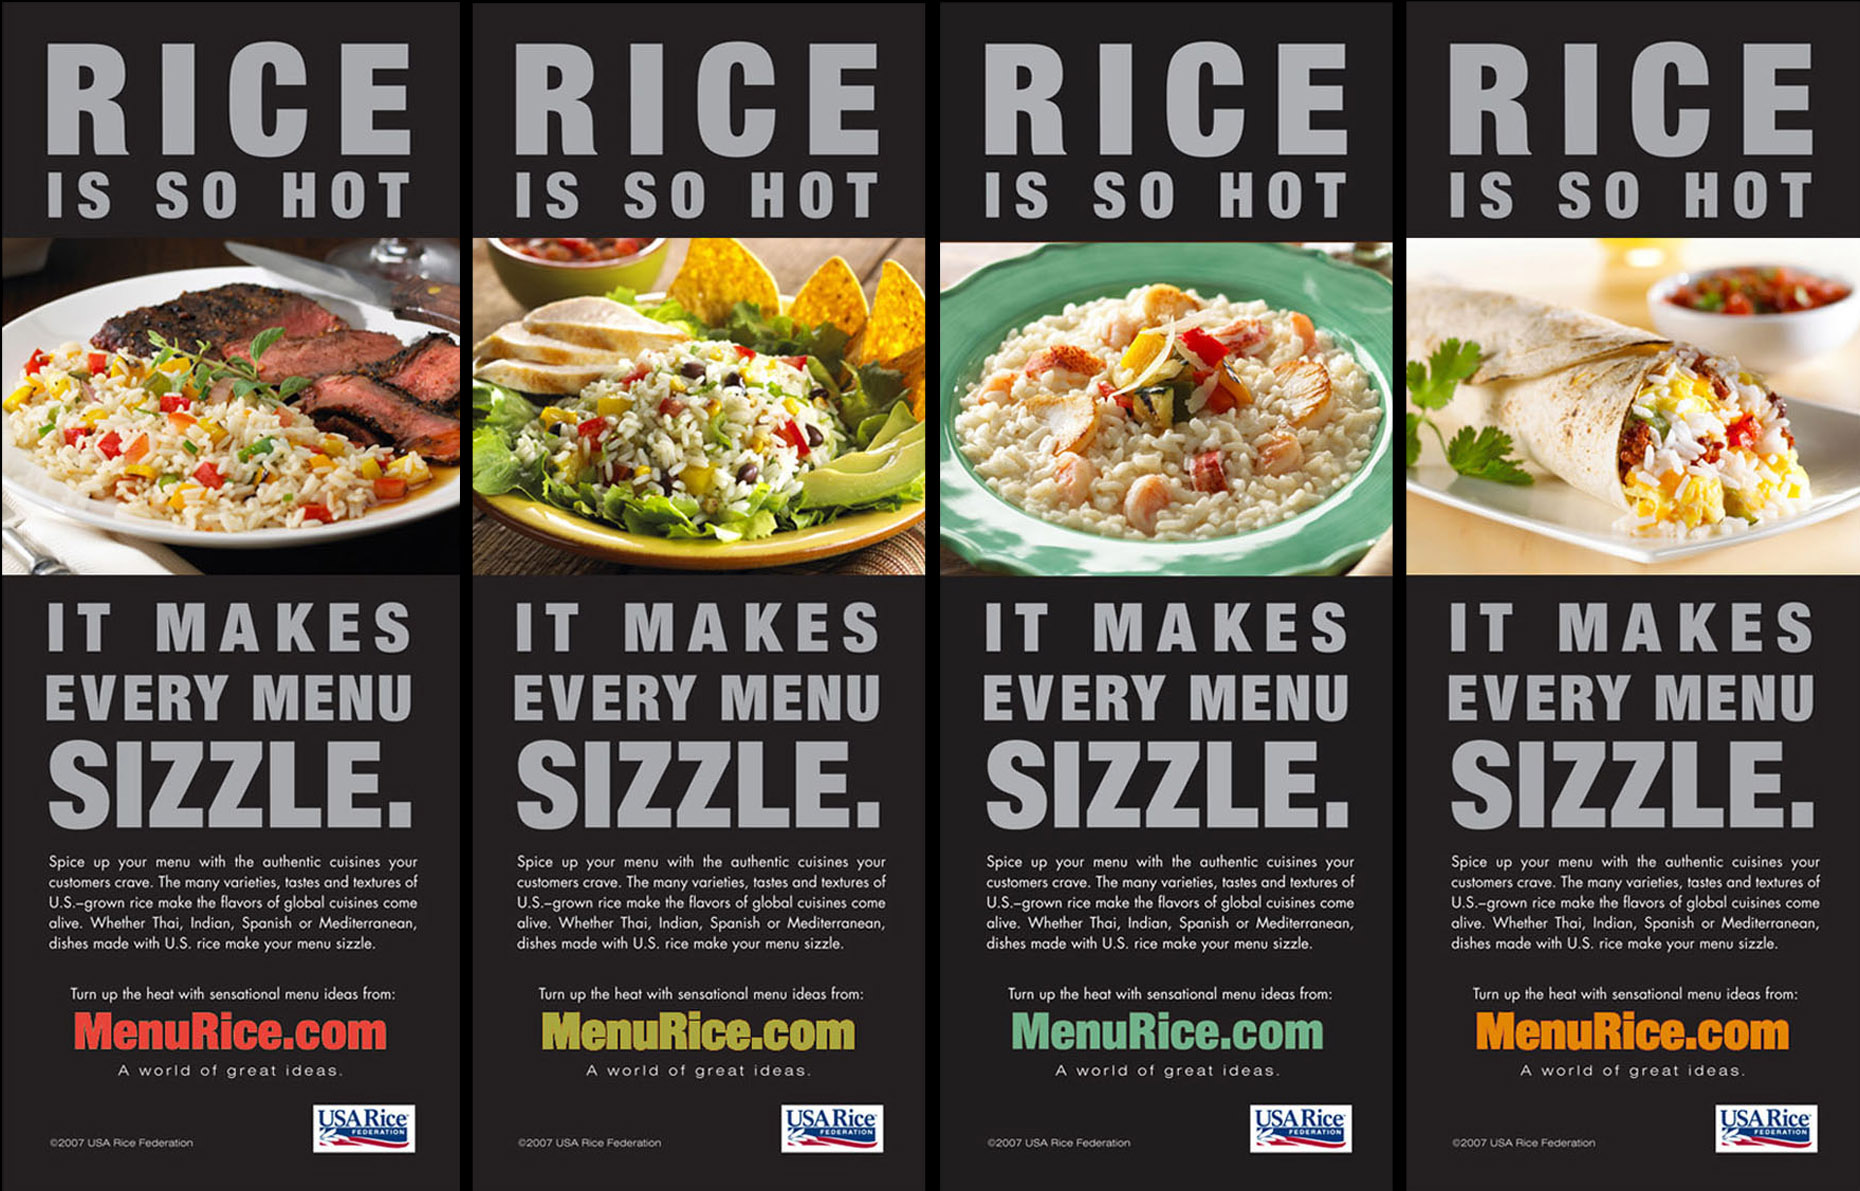 USA Rice Federation_Advertising Photography_Food Photography